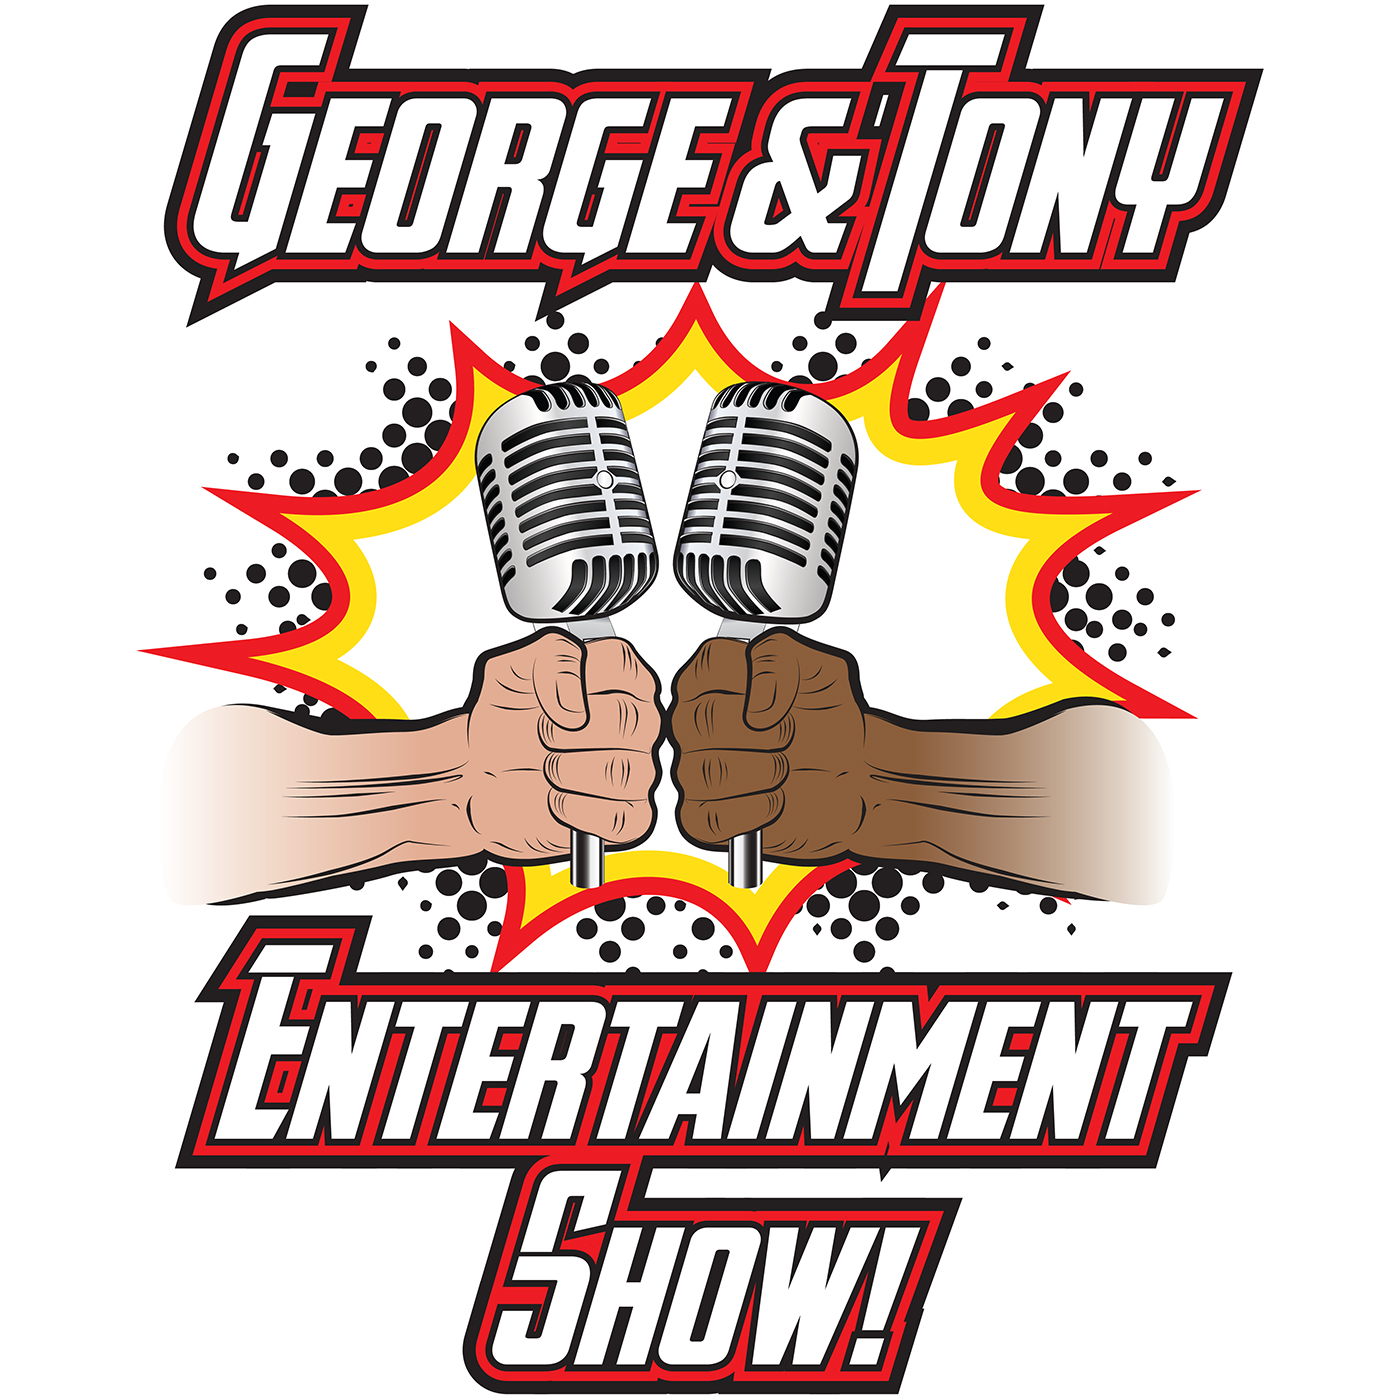 George and Tony Entertainment Show #9